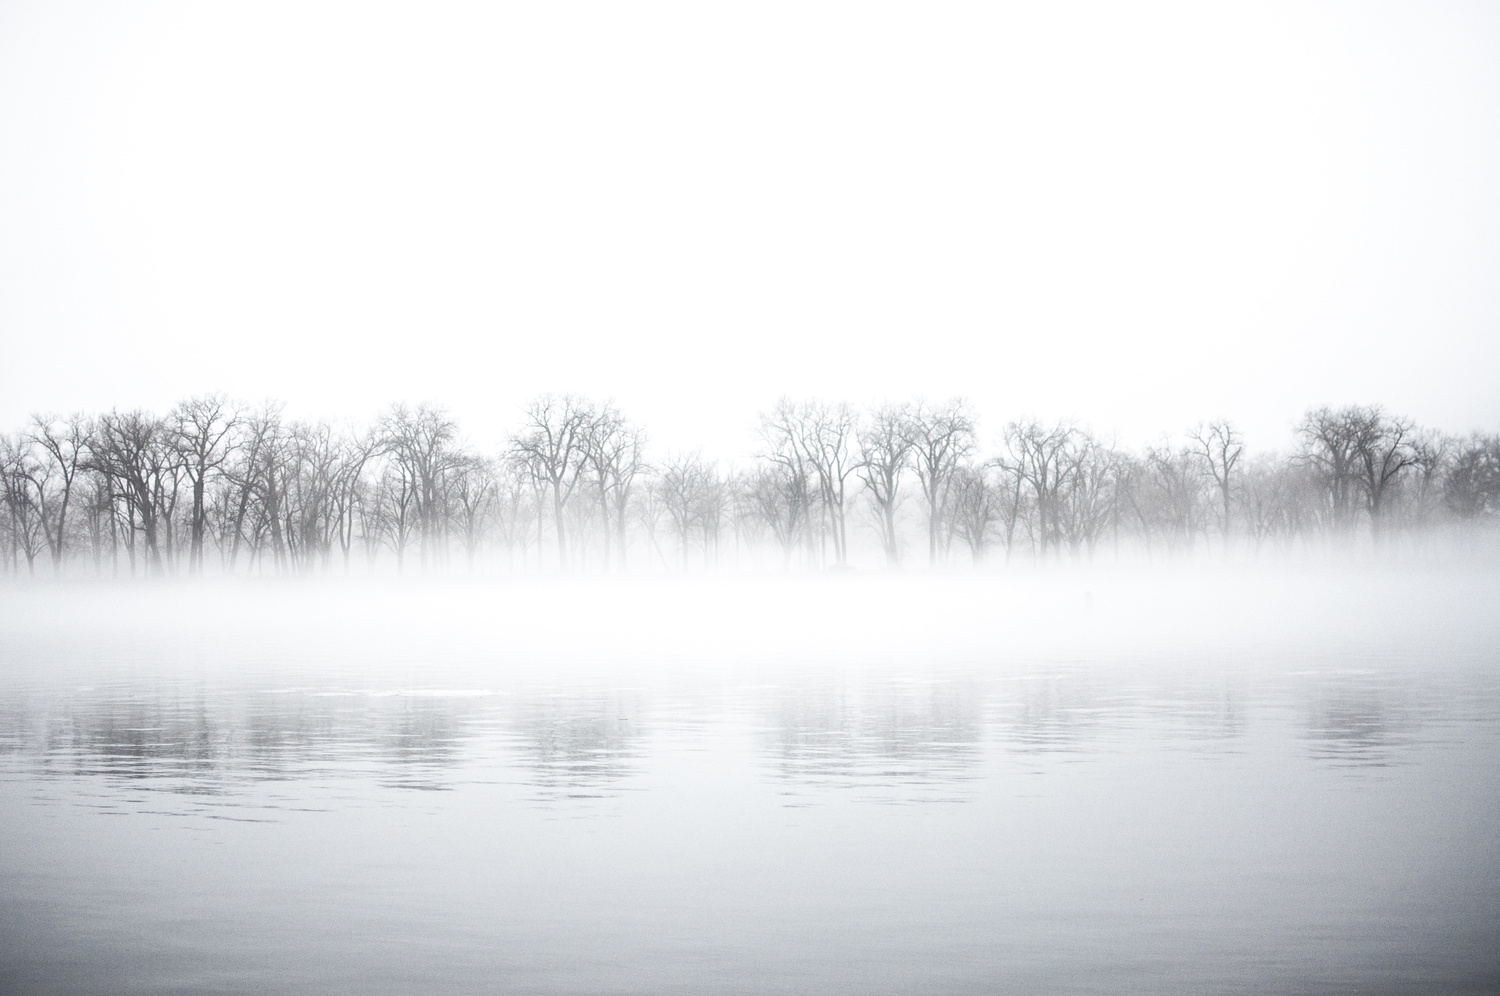 Foggy River by jason stuempges